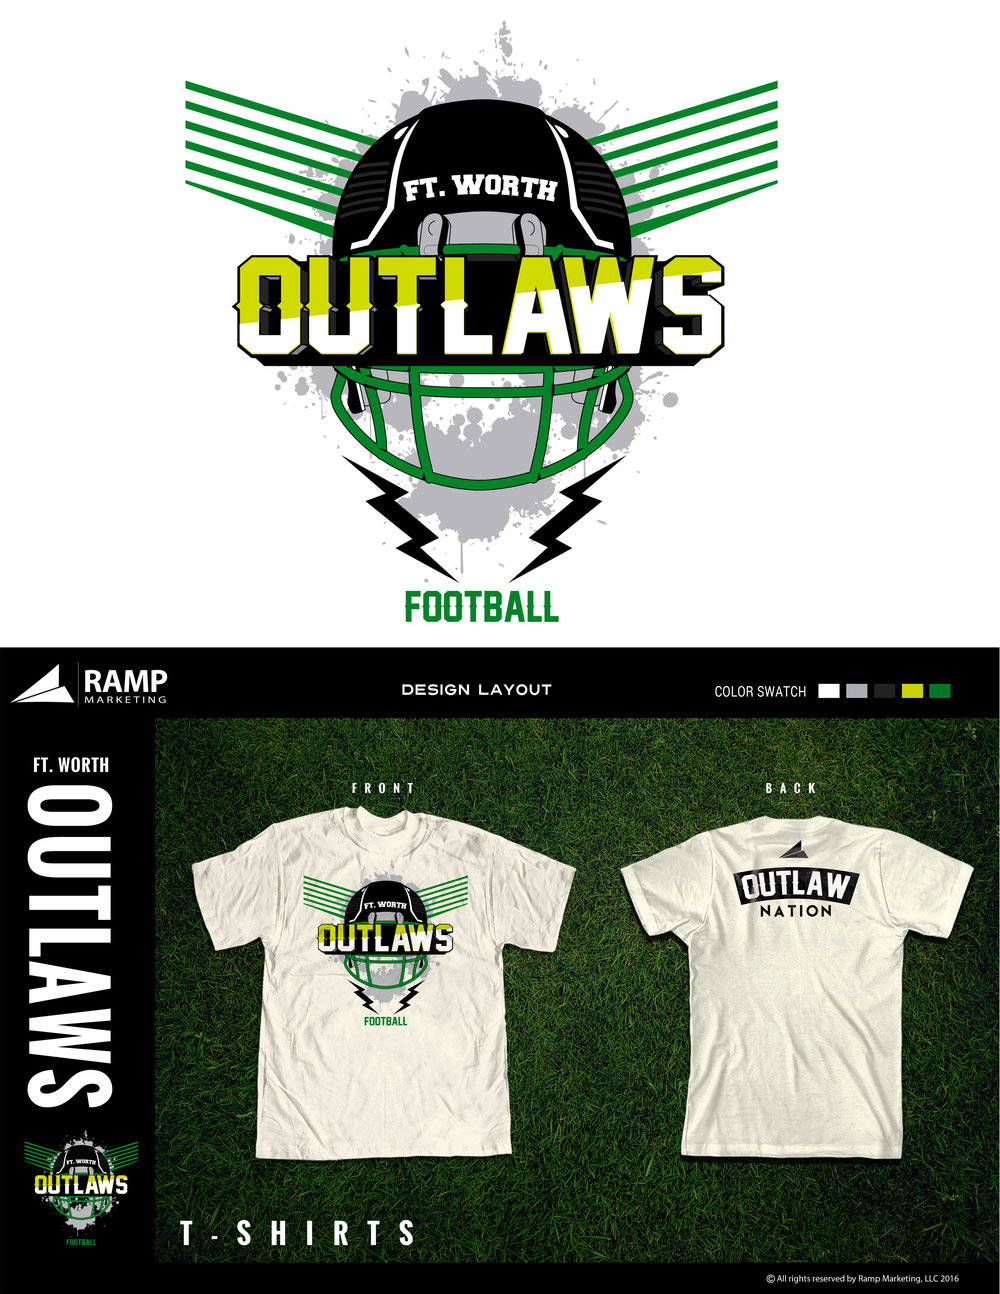 ramp marketing shirt(outlaws).jpg